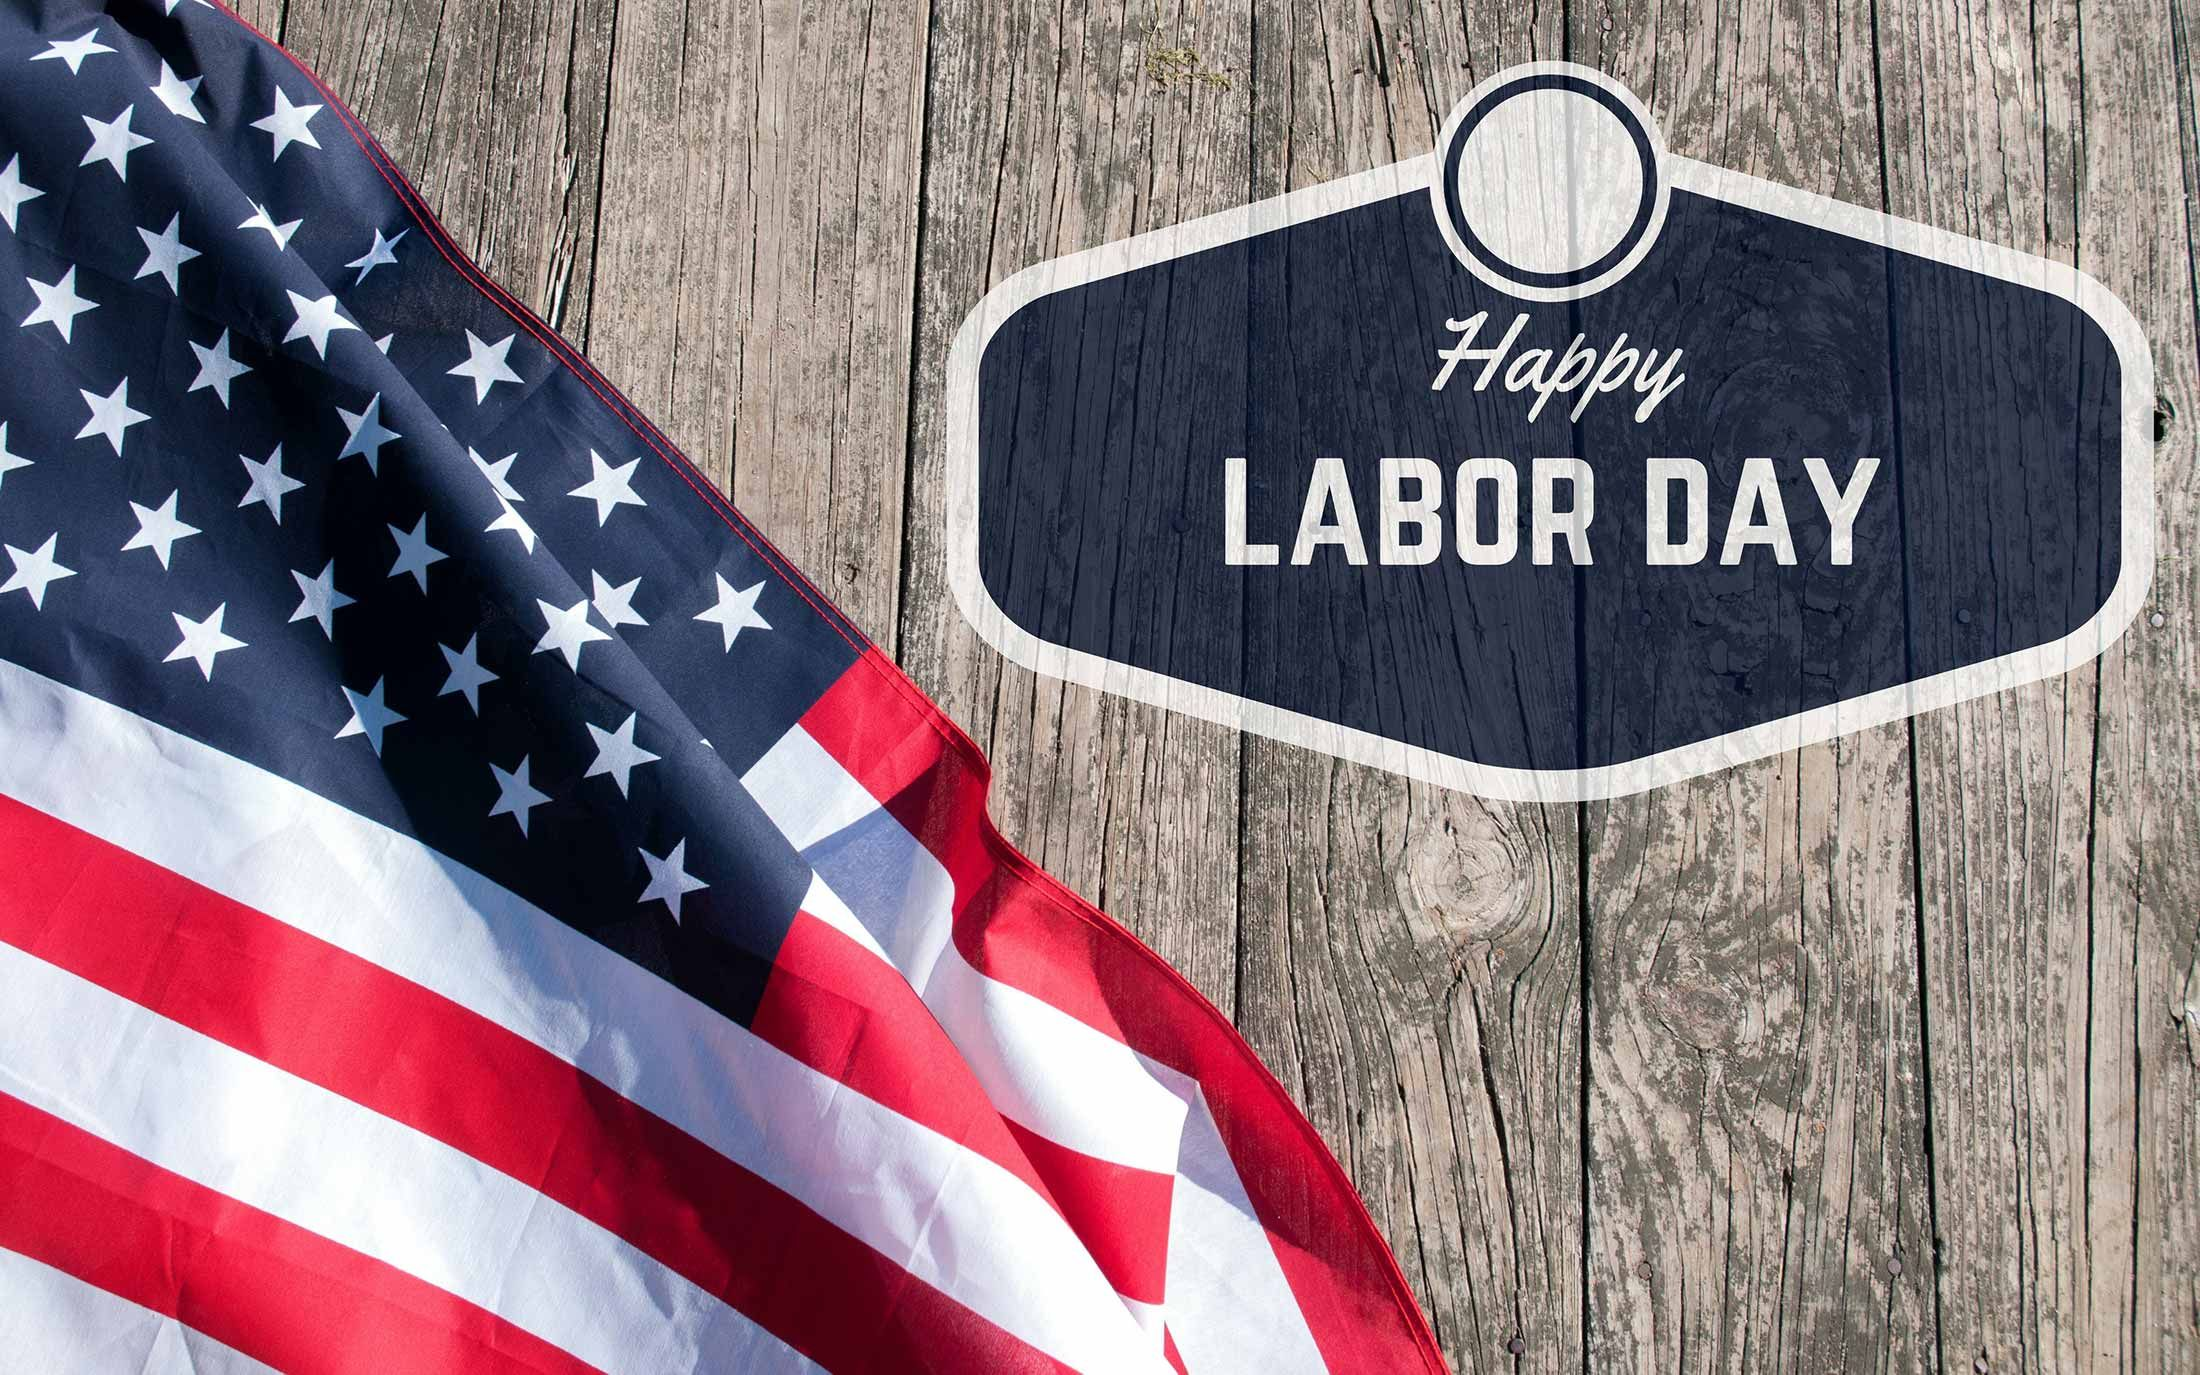 Labor Day Usa Images 2019